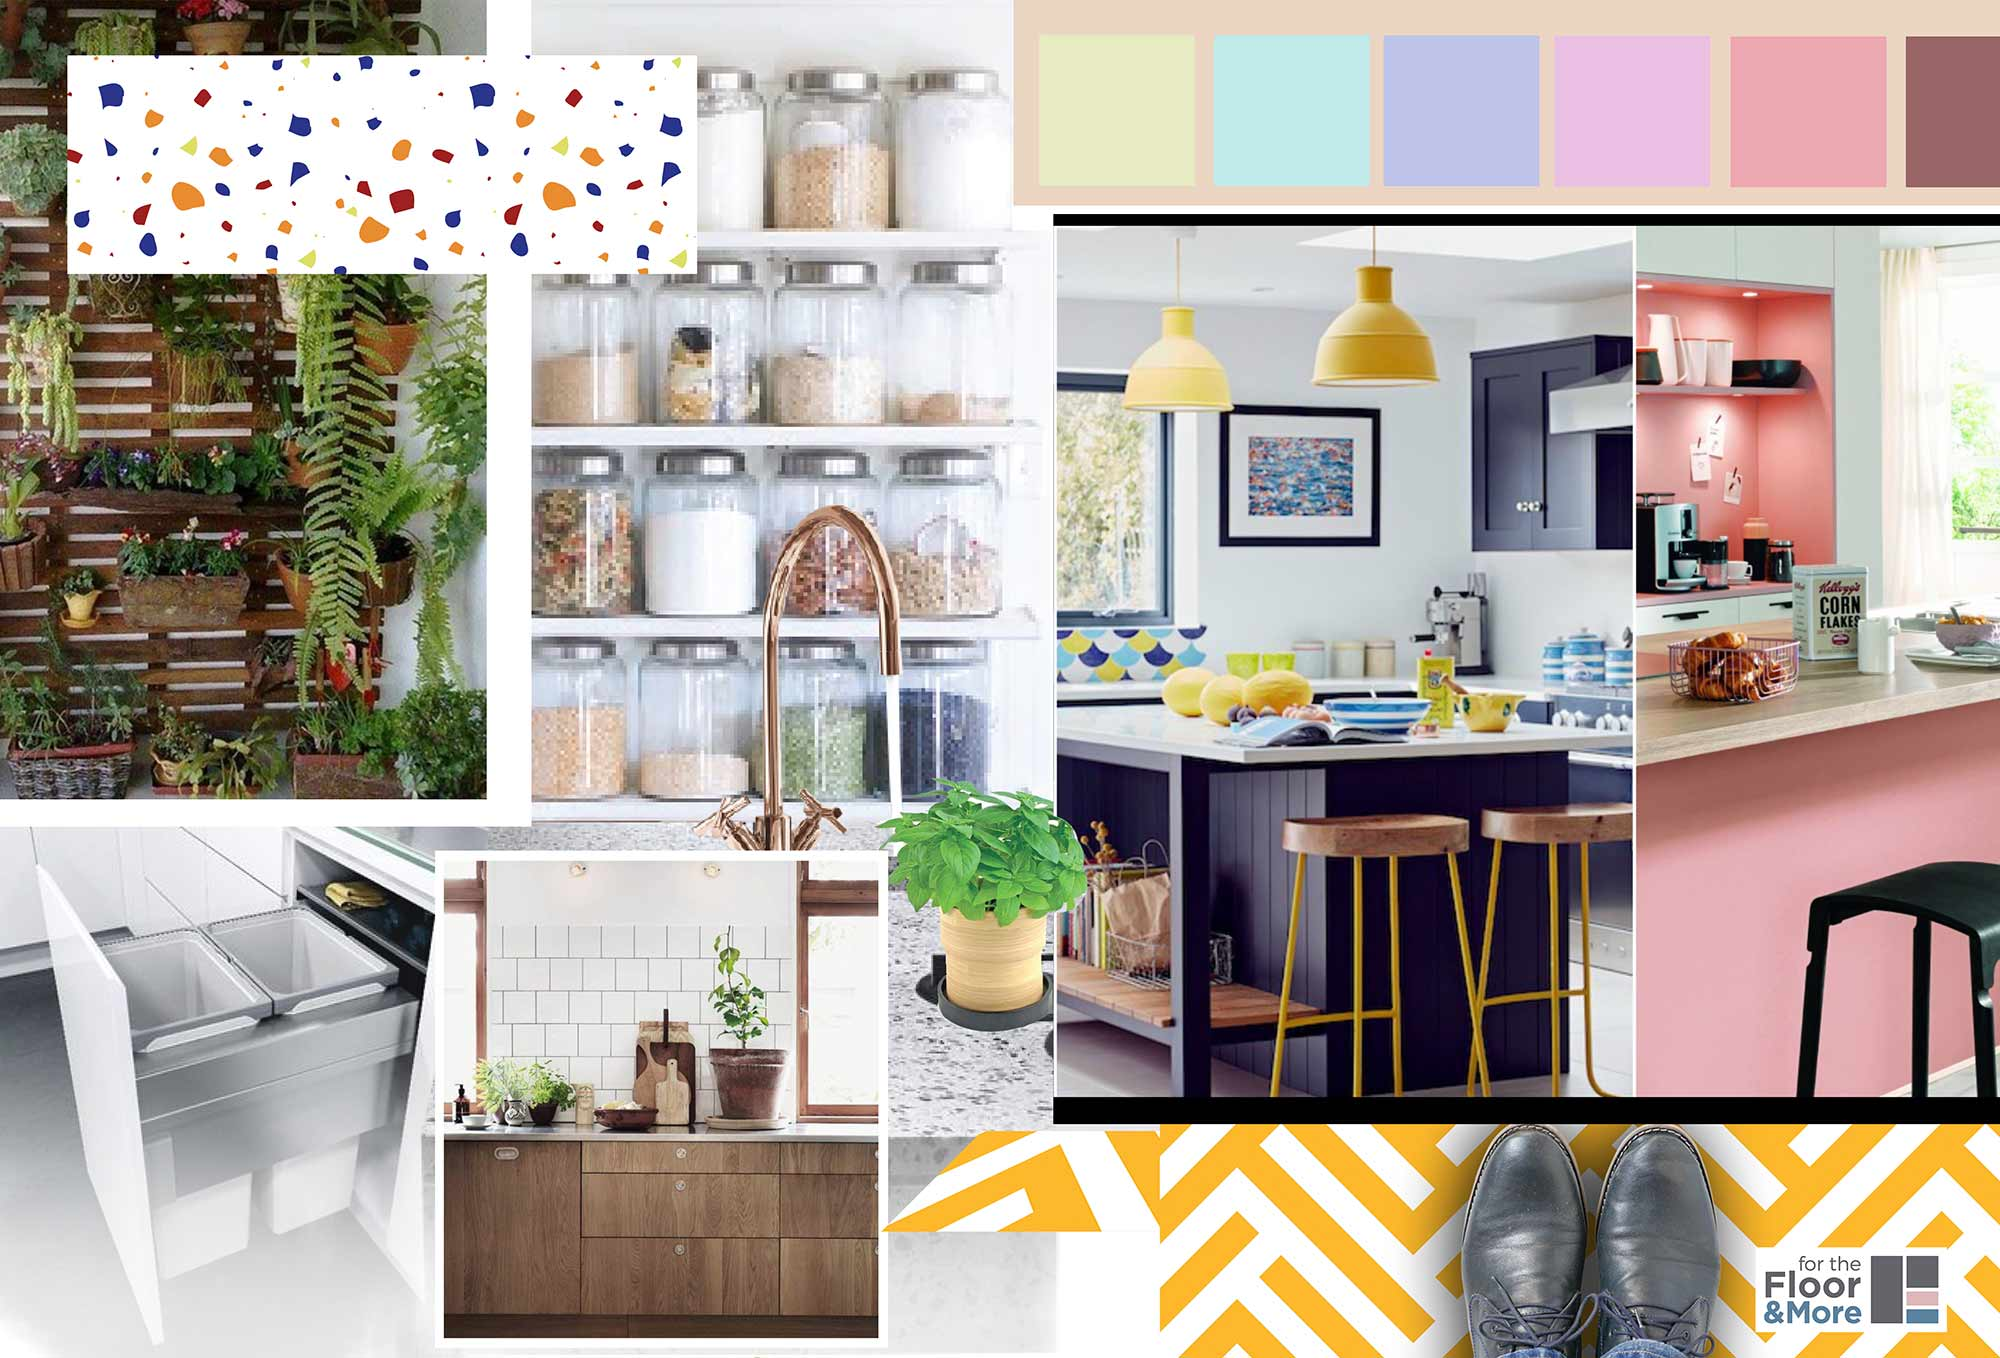 Kitchen_Moodboard image showing ideas and inspiration for SS2018 from forthefloorandmore.com